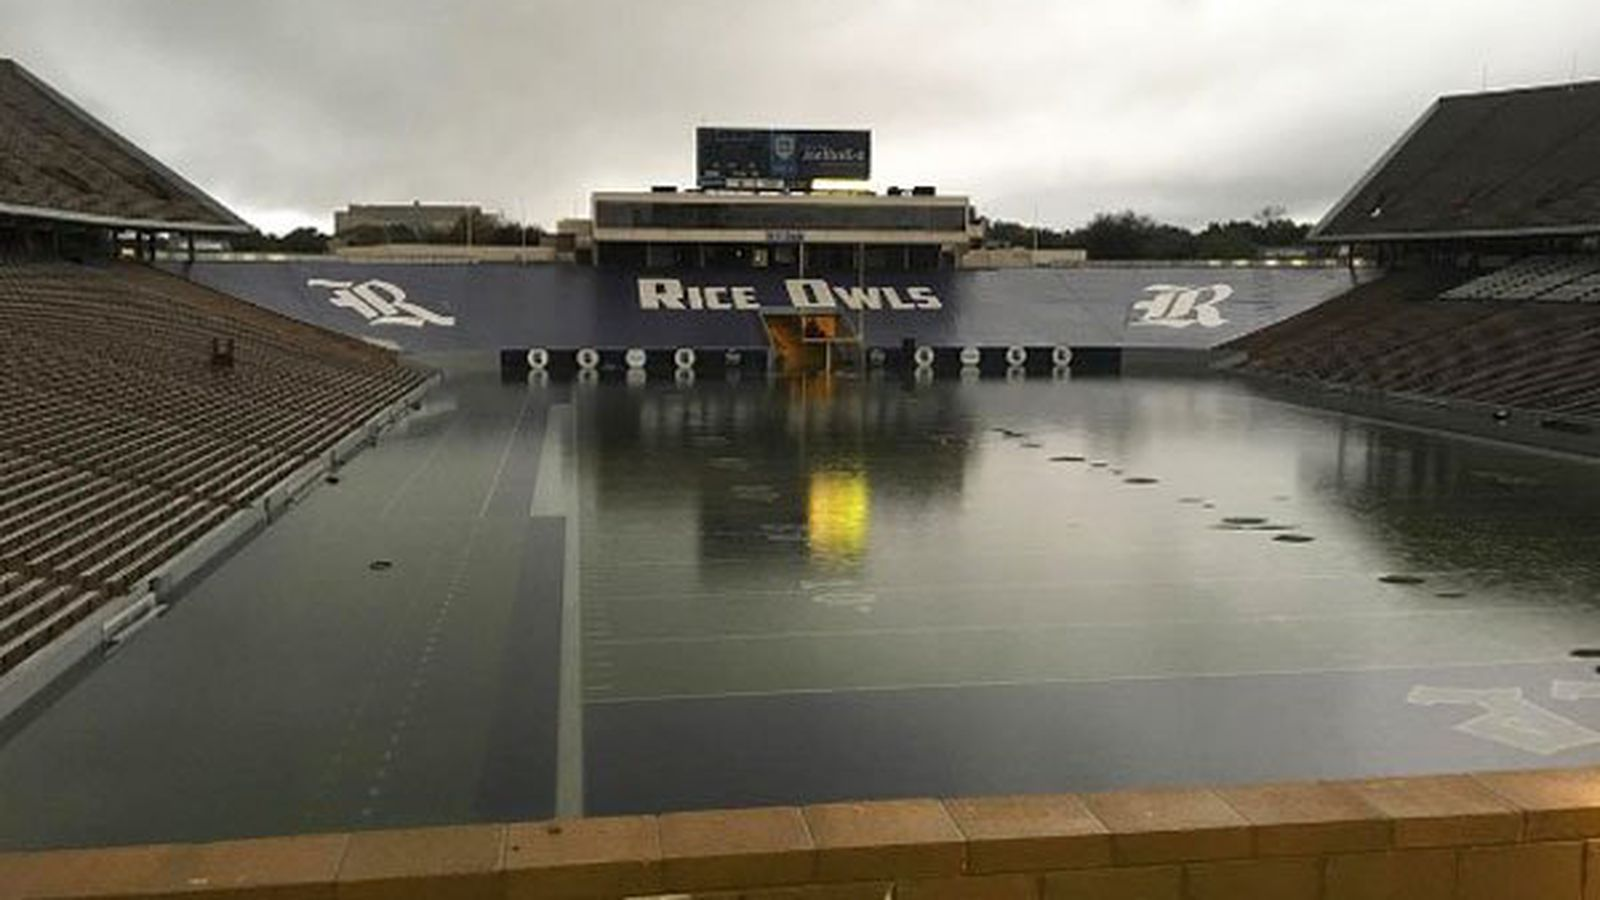 Rice S Football Field Is Totally Underwater Sbnation Com